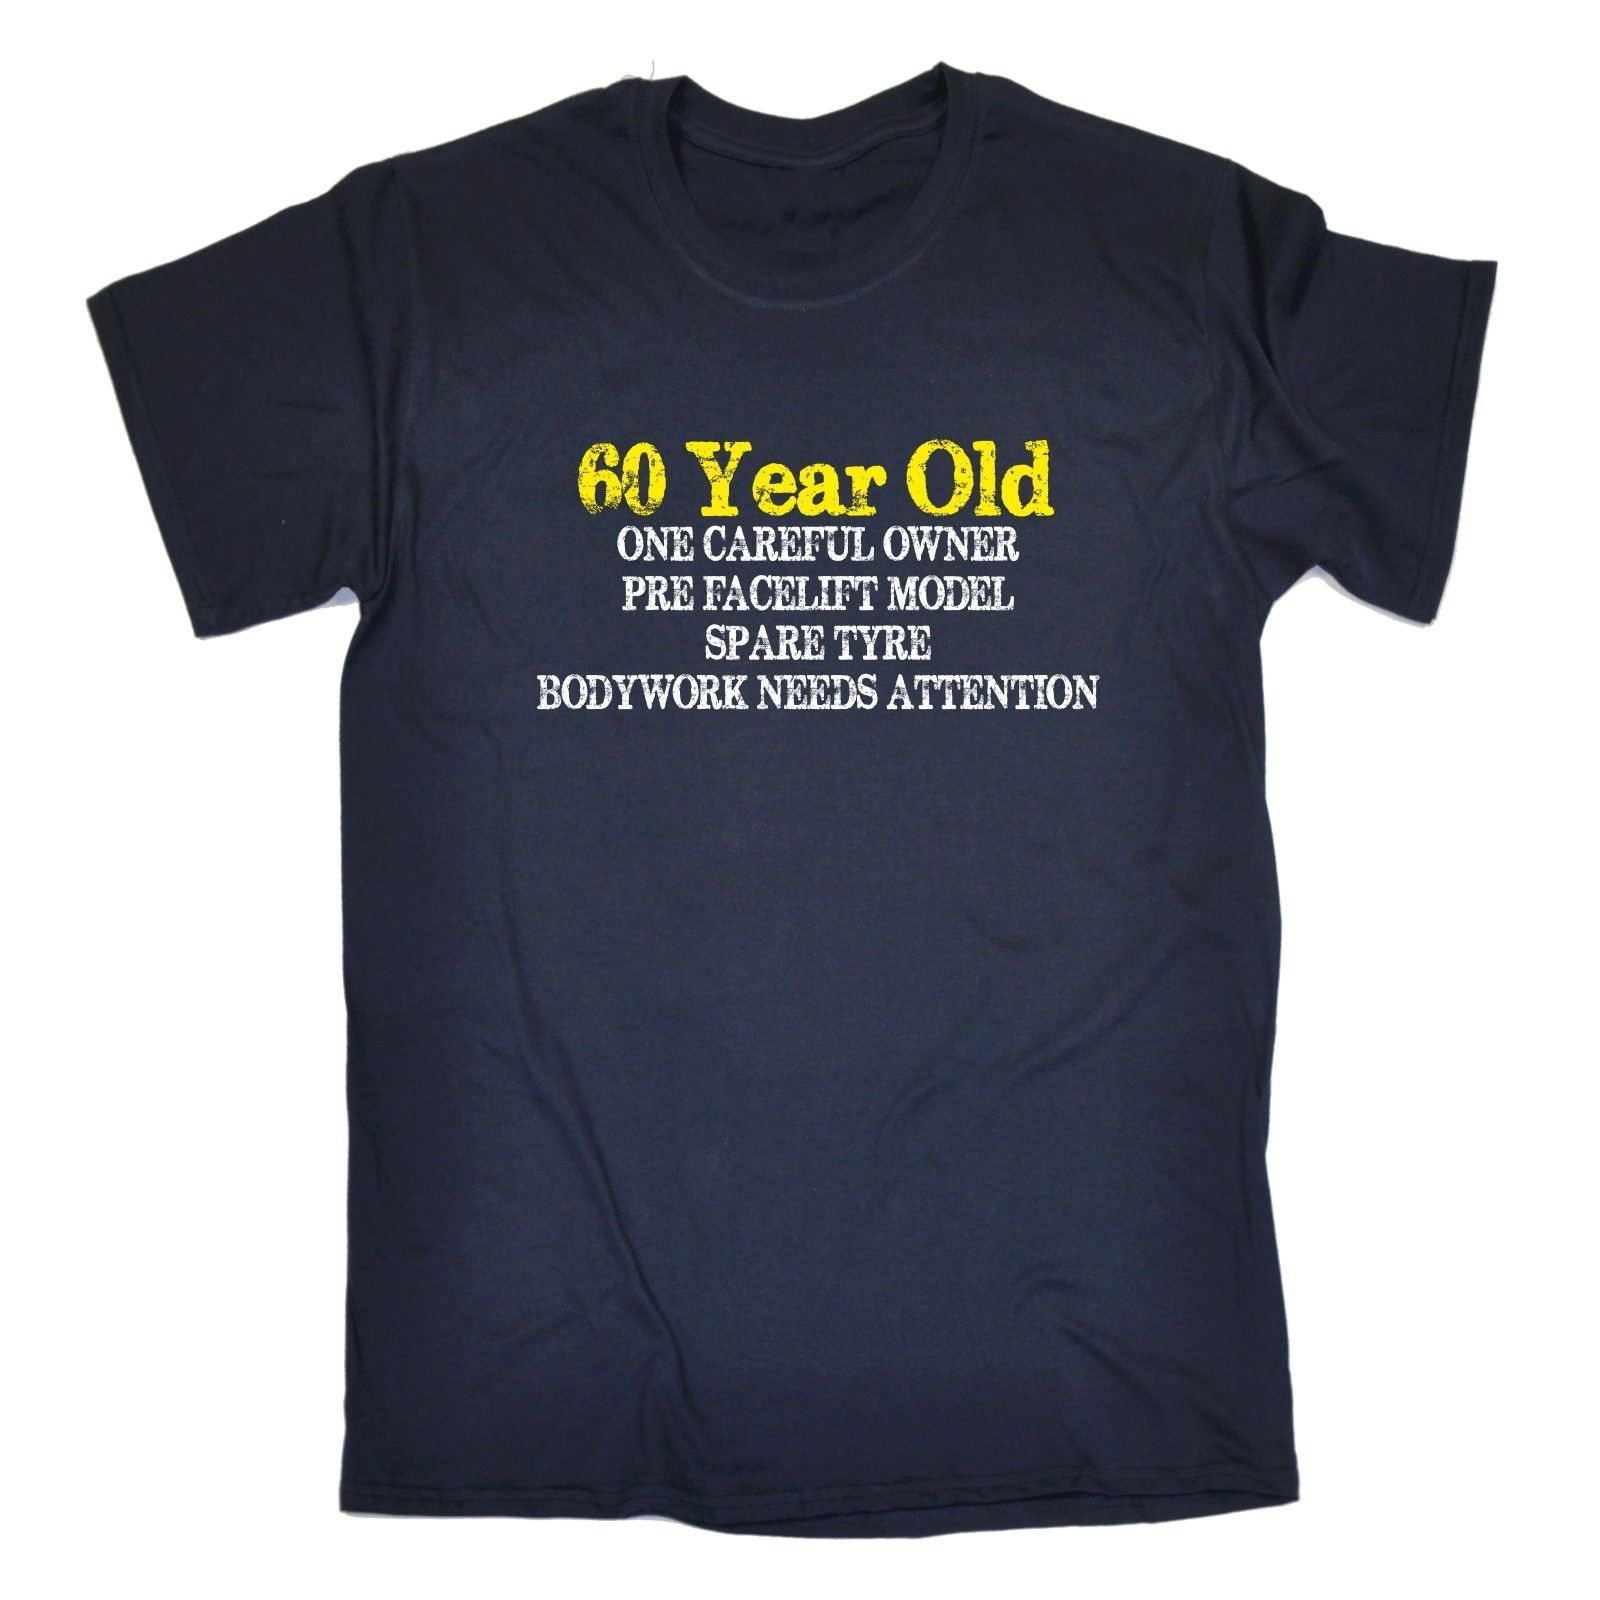 60 year old one careful owner t shirt tee 60th dad grandad T shirts for dad